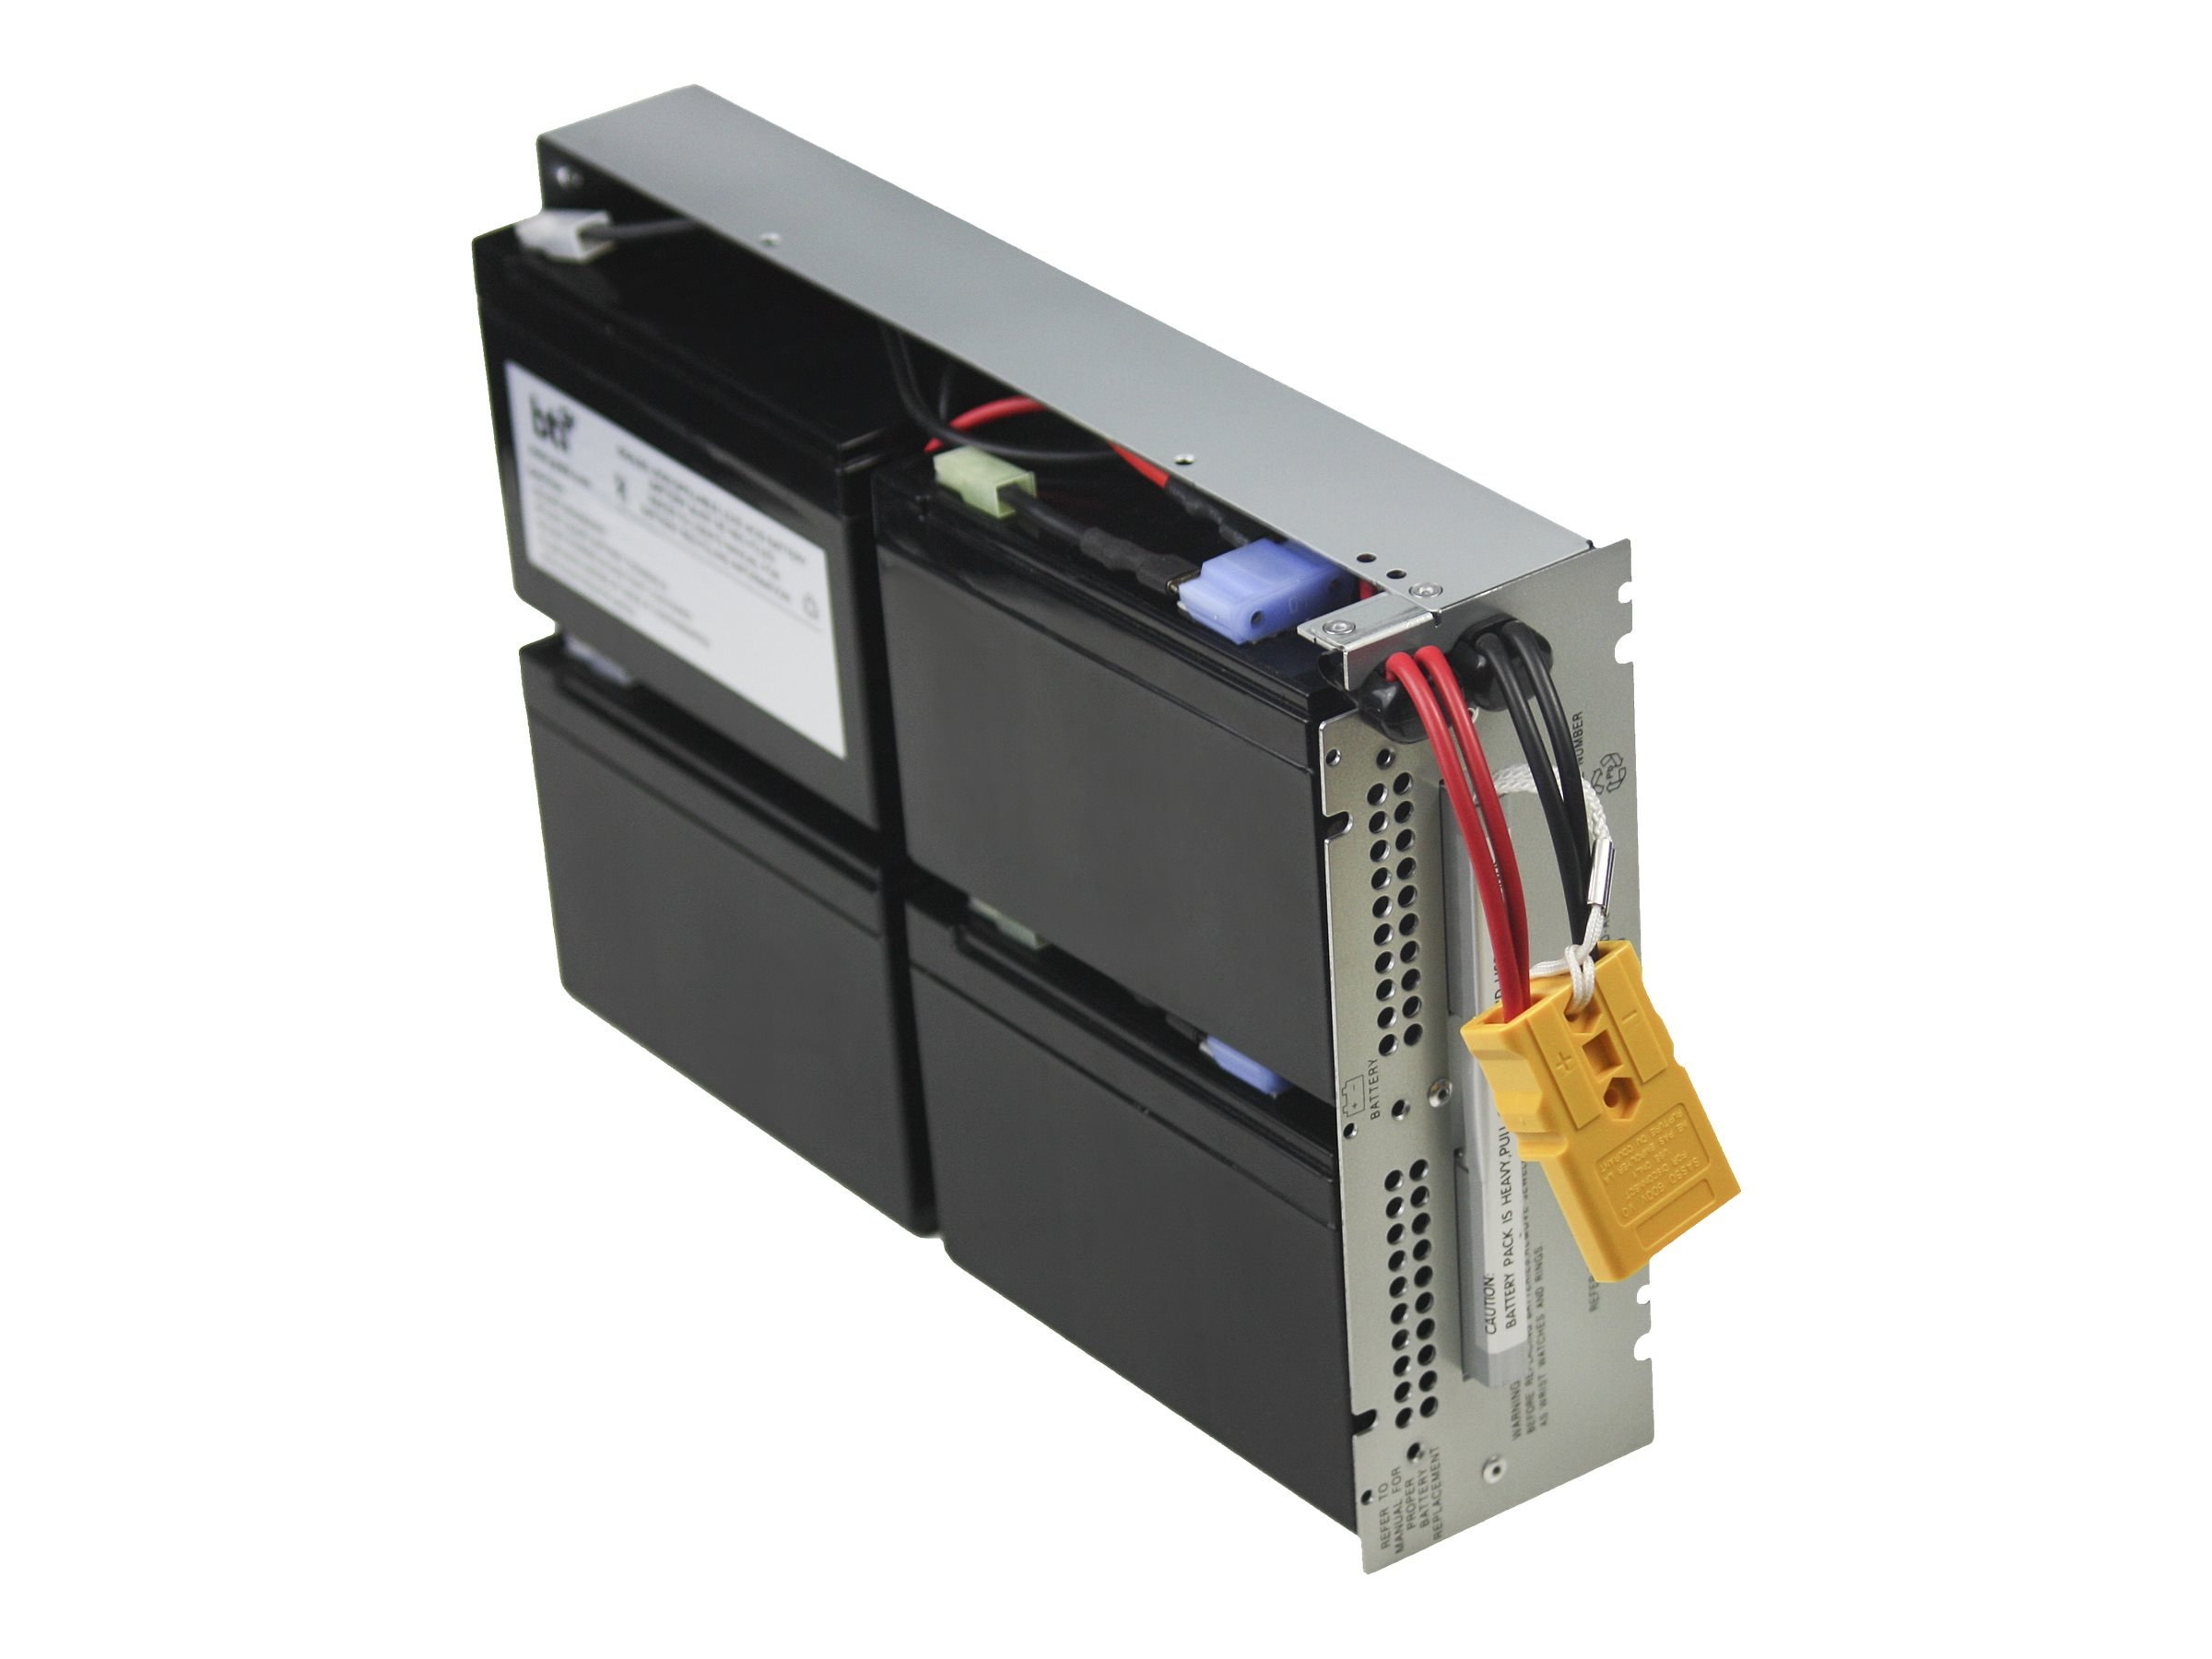 BTI Replacement UPS Battery for APC SMT1500RM2U RBC133 APCRBC133